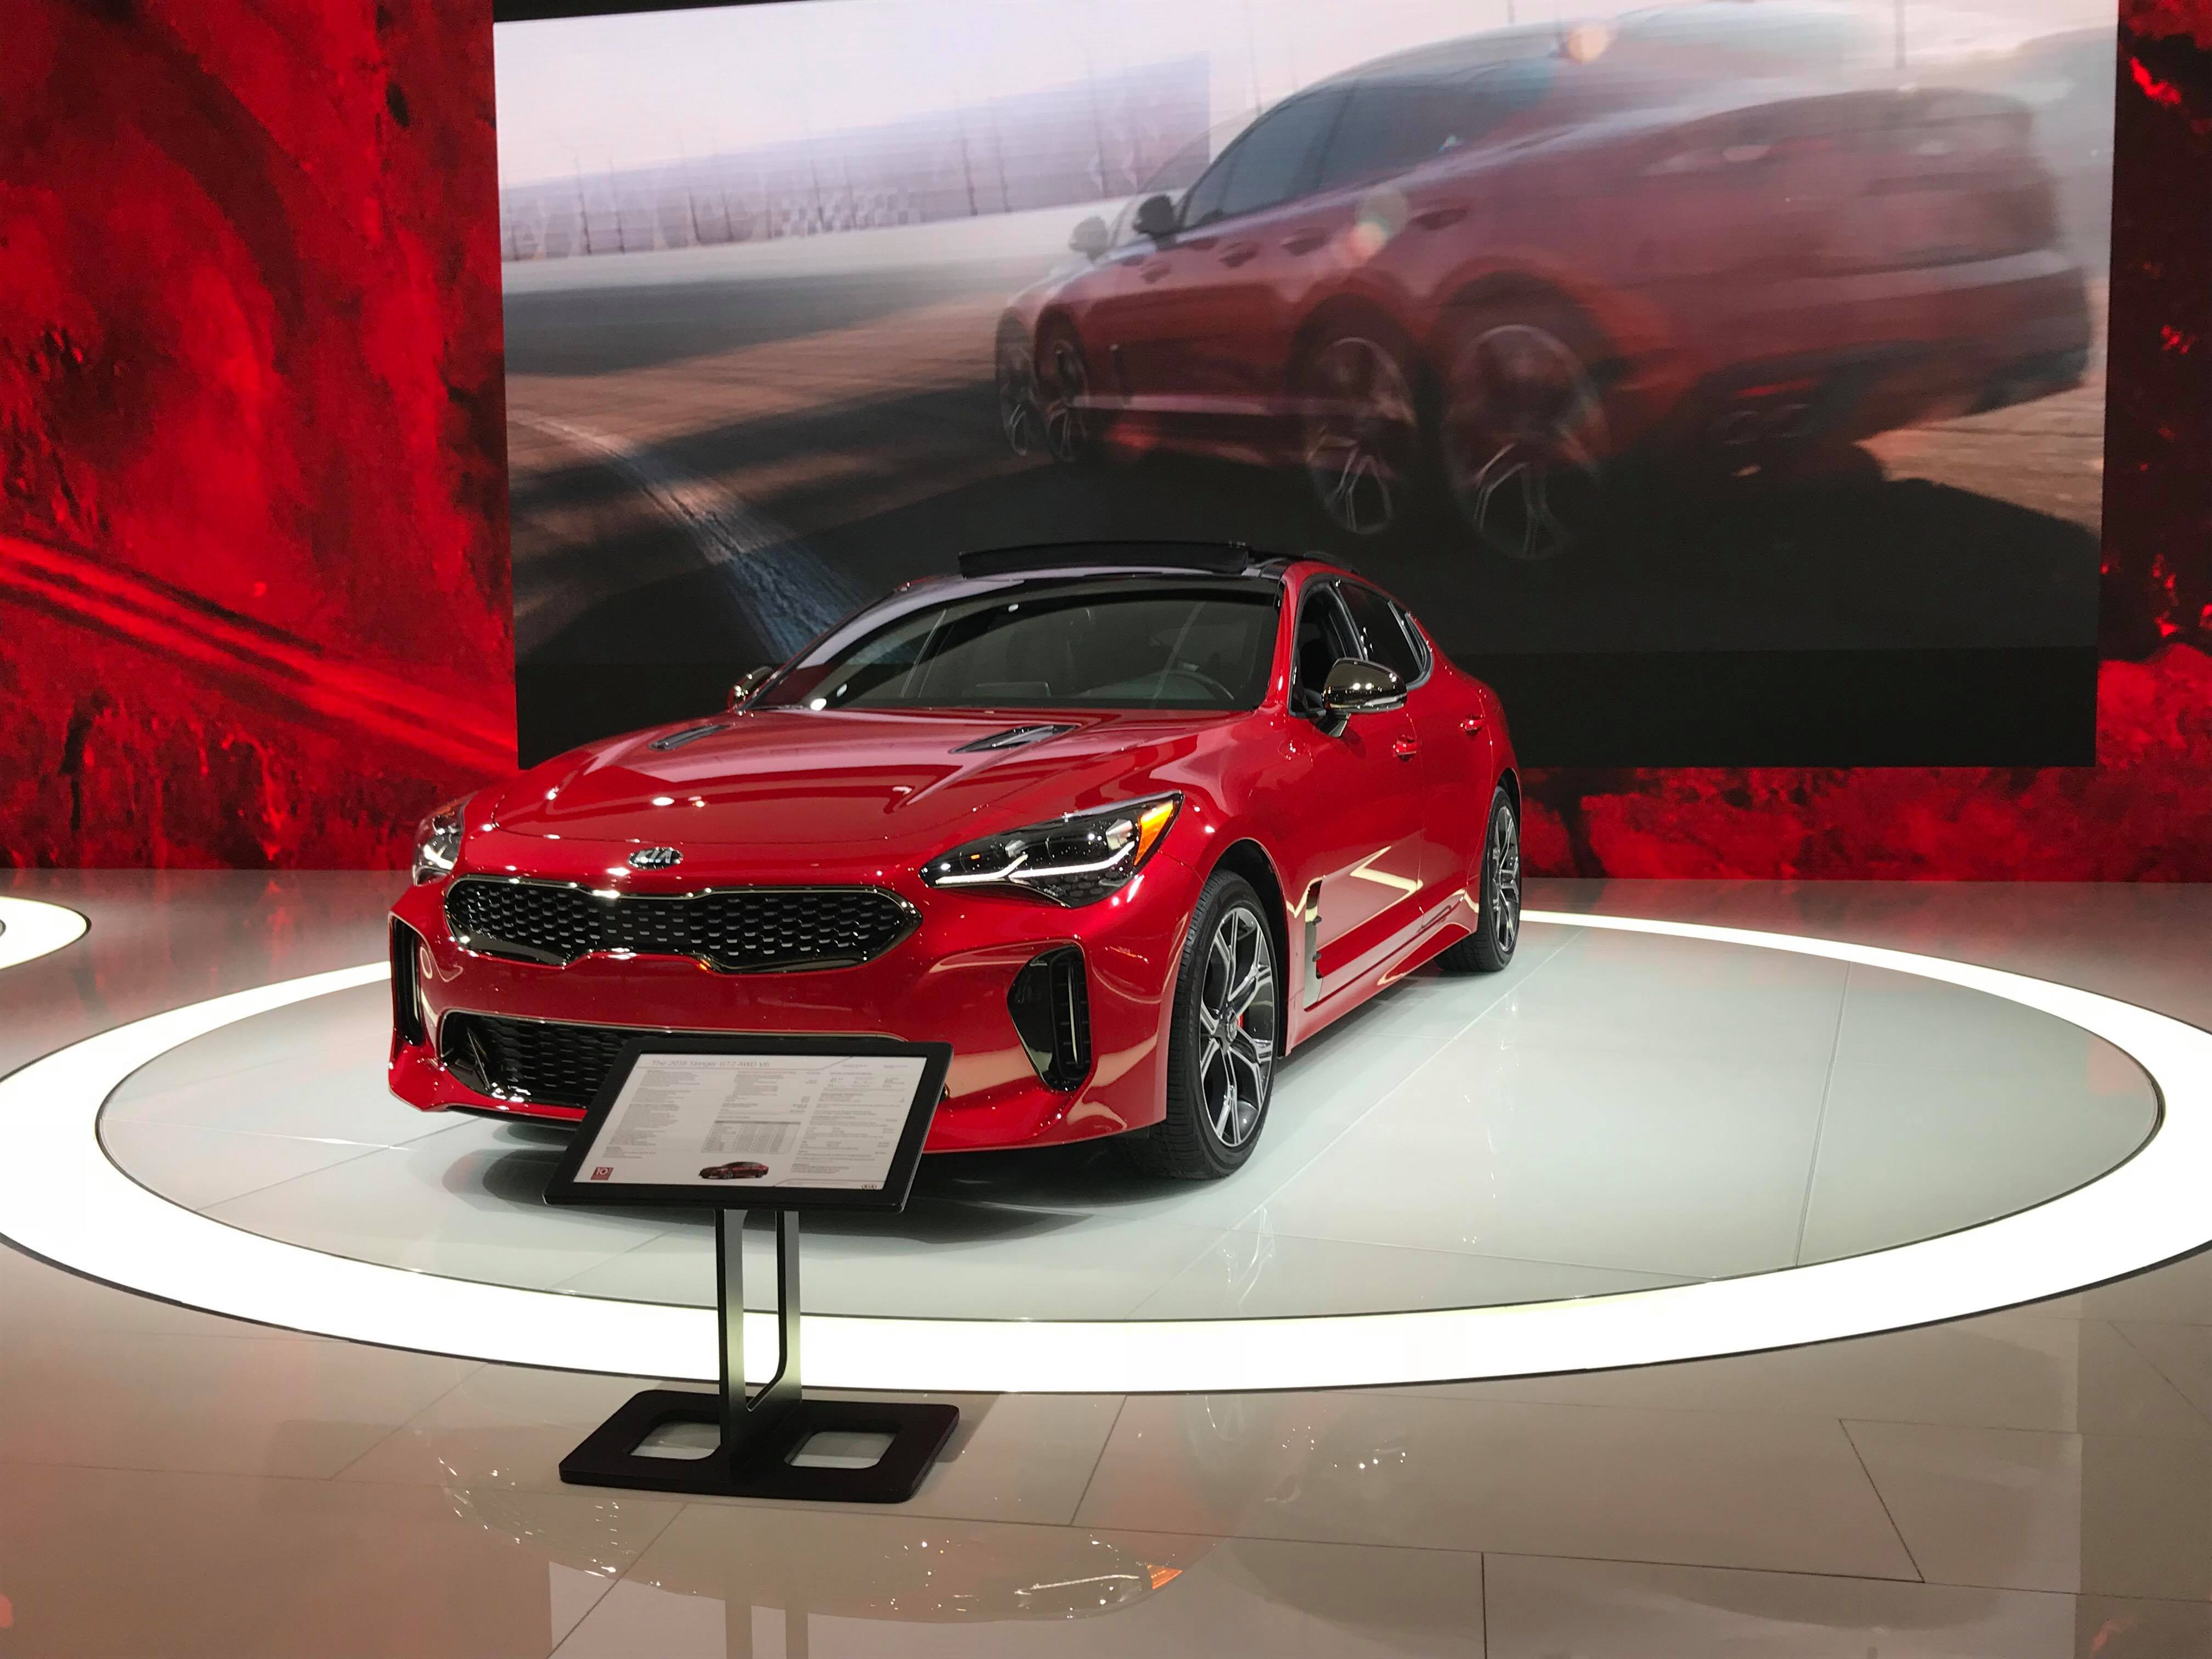 concept motion report sports year in hatch this more car kia gt hot show front quarter three news rio debuts stinger